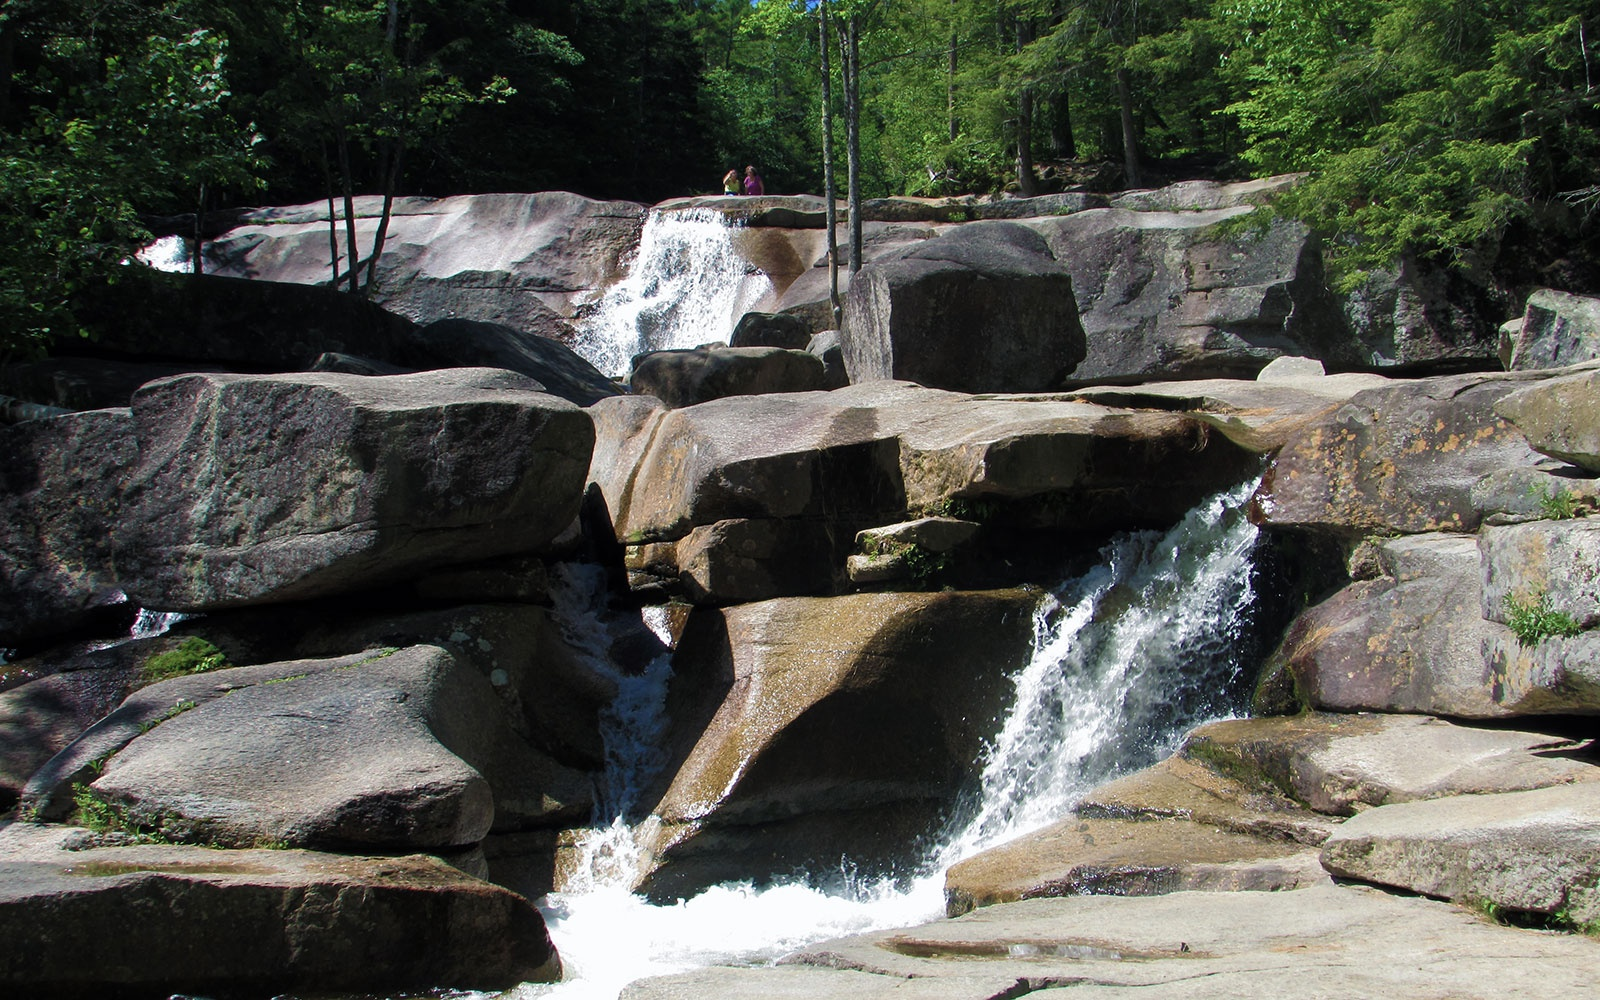 waterfalls at Diana's Baths swimming hole in Bartlett, NH